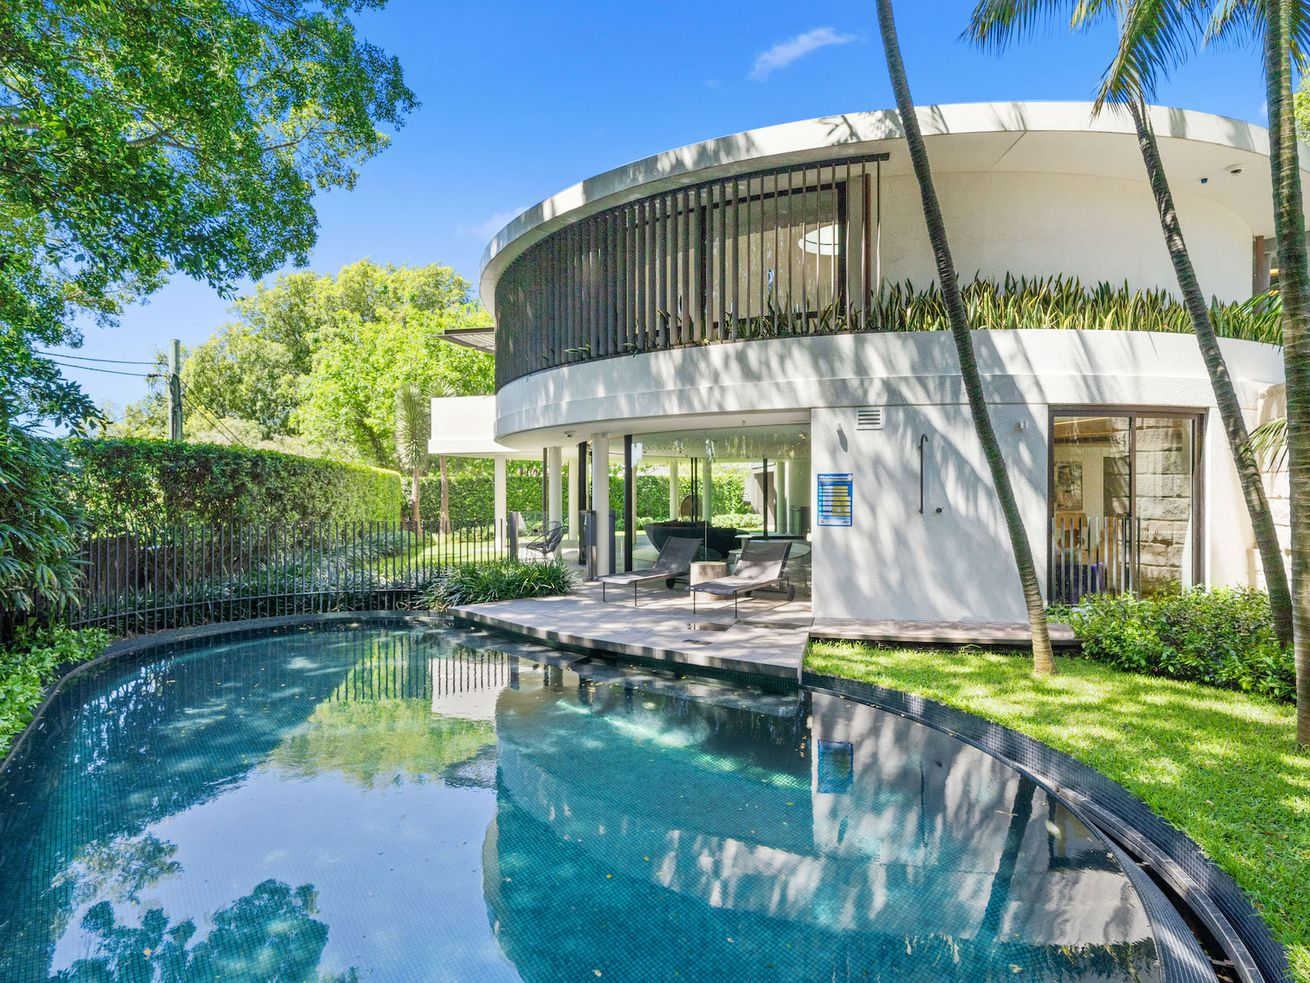 Circular midcentury beauty comes with a dramatic oculus